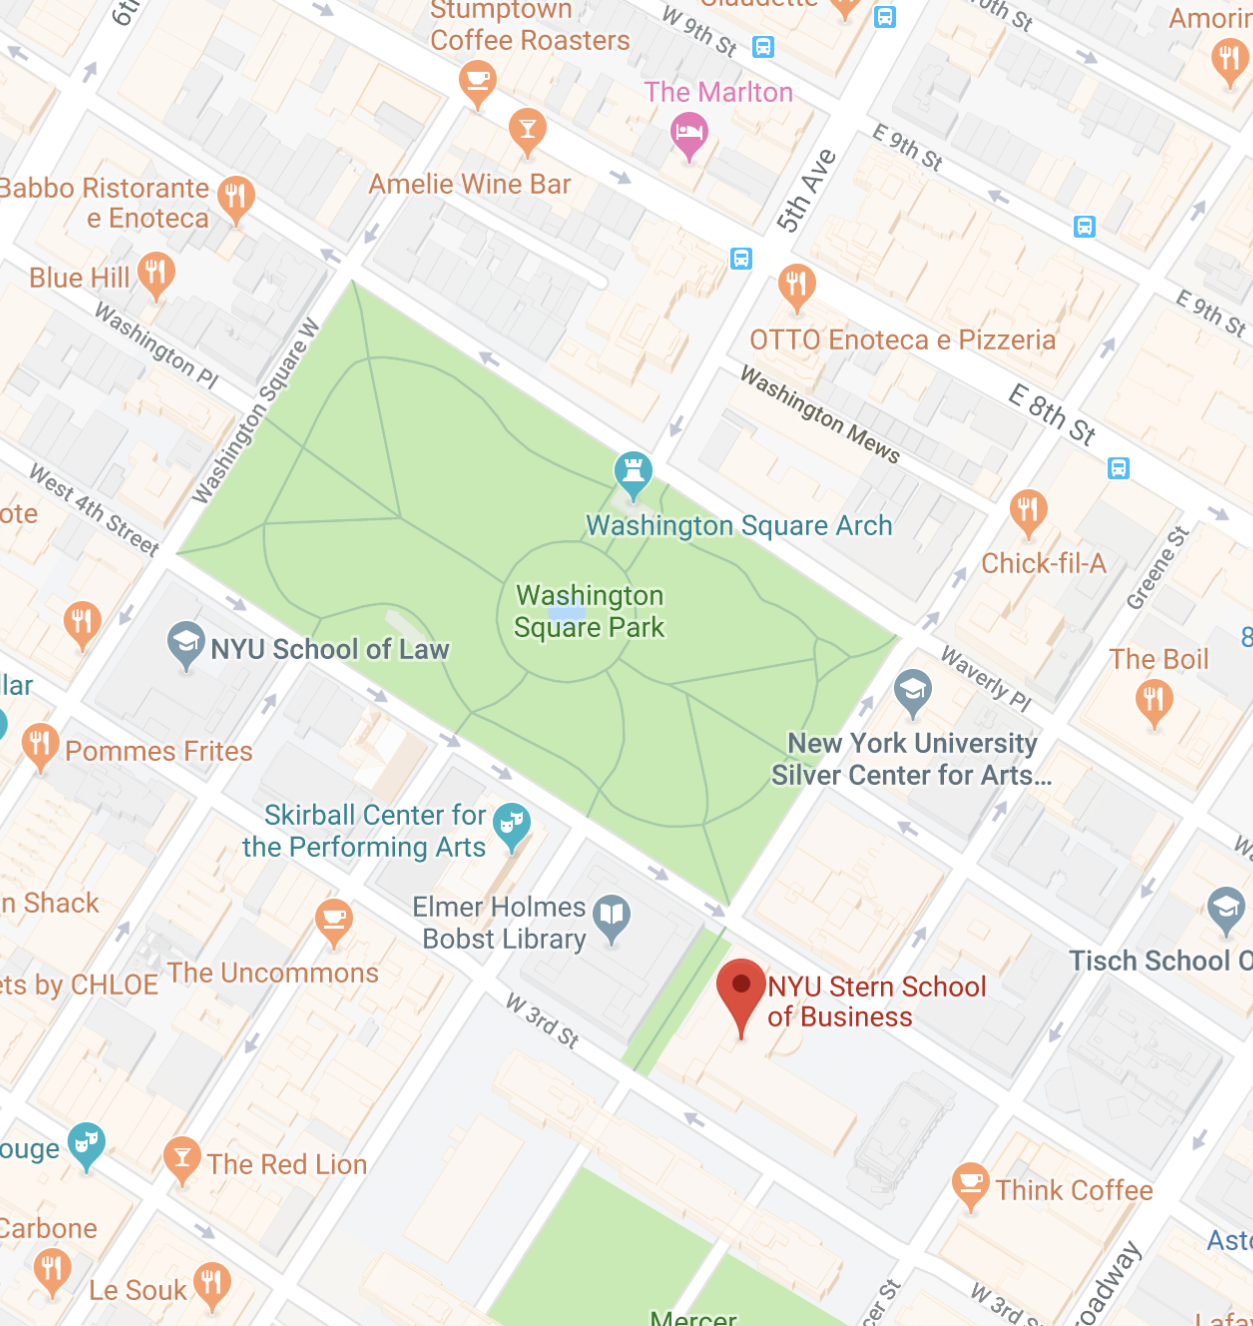 Map showing the location of NYU Stern School of Business